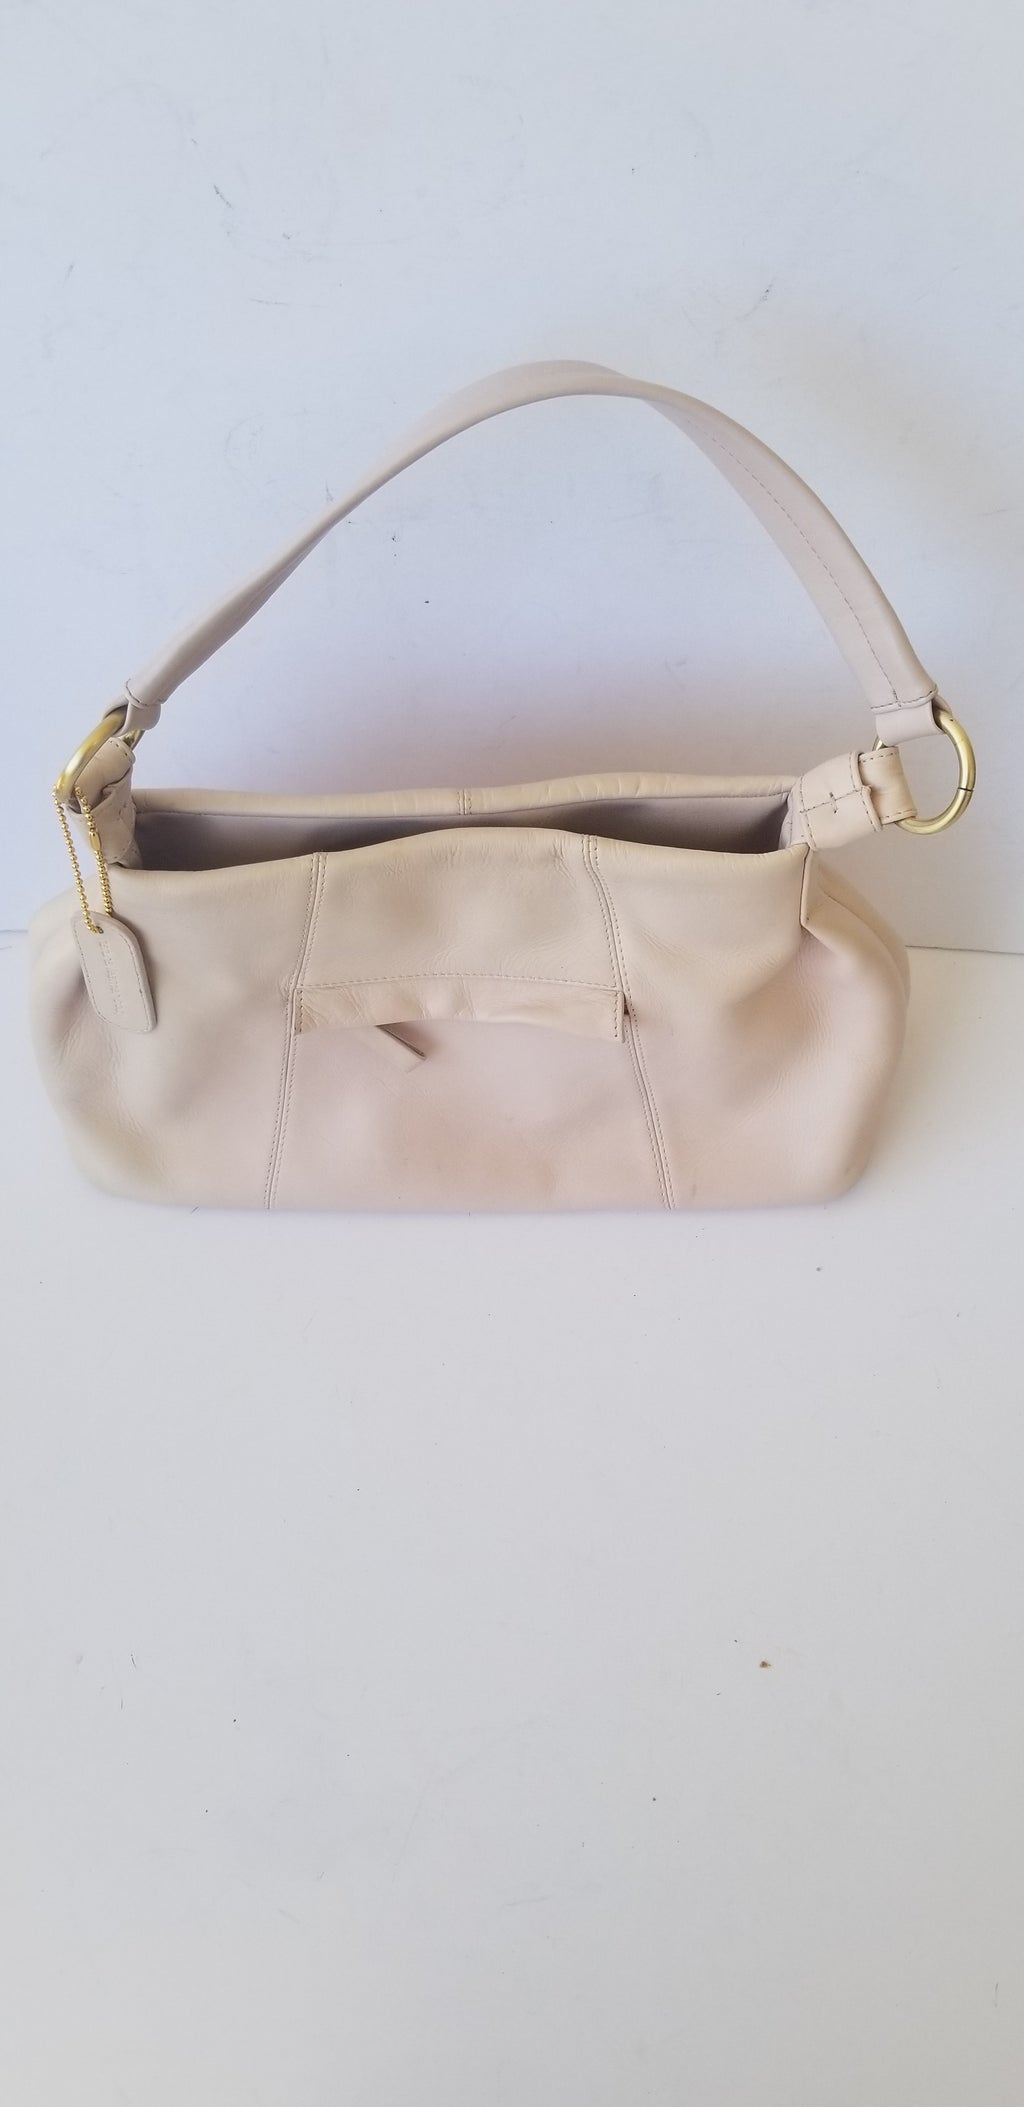 Liz Claiborne women's handbag blush pink genuine leather medium